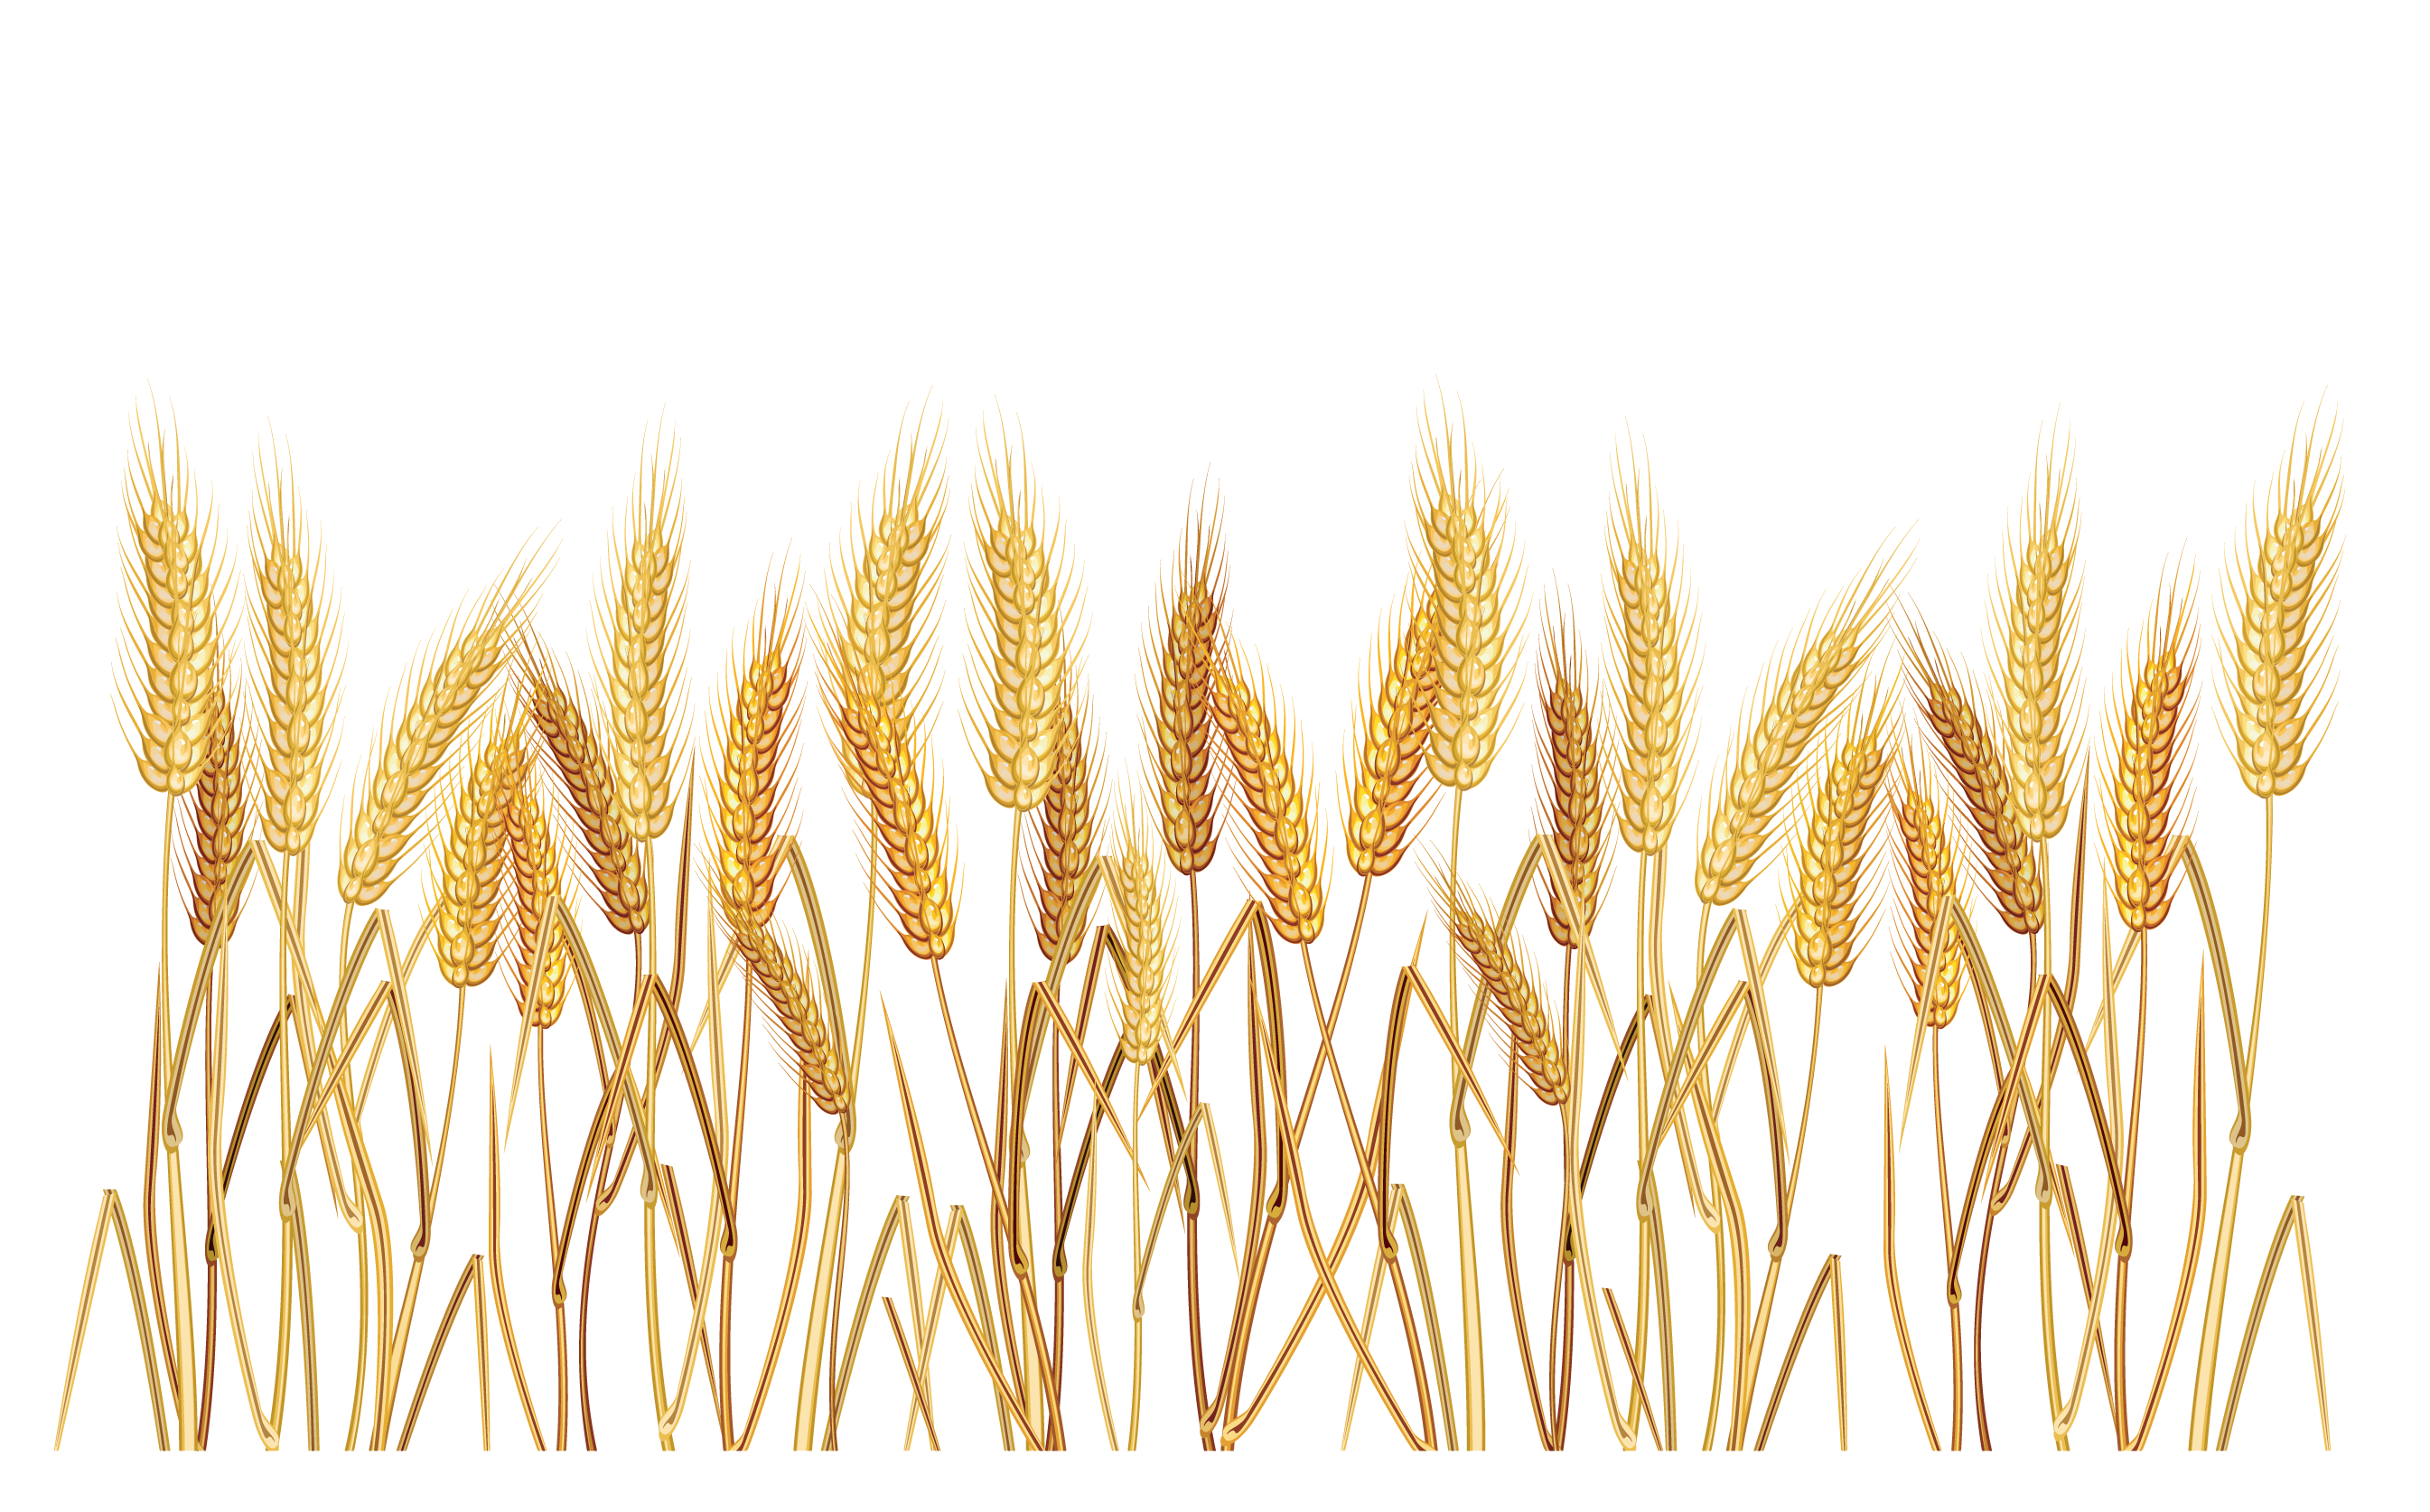 Wheat clipart palay.  collection of grass